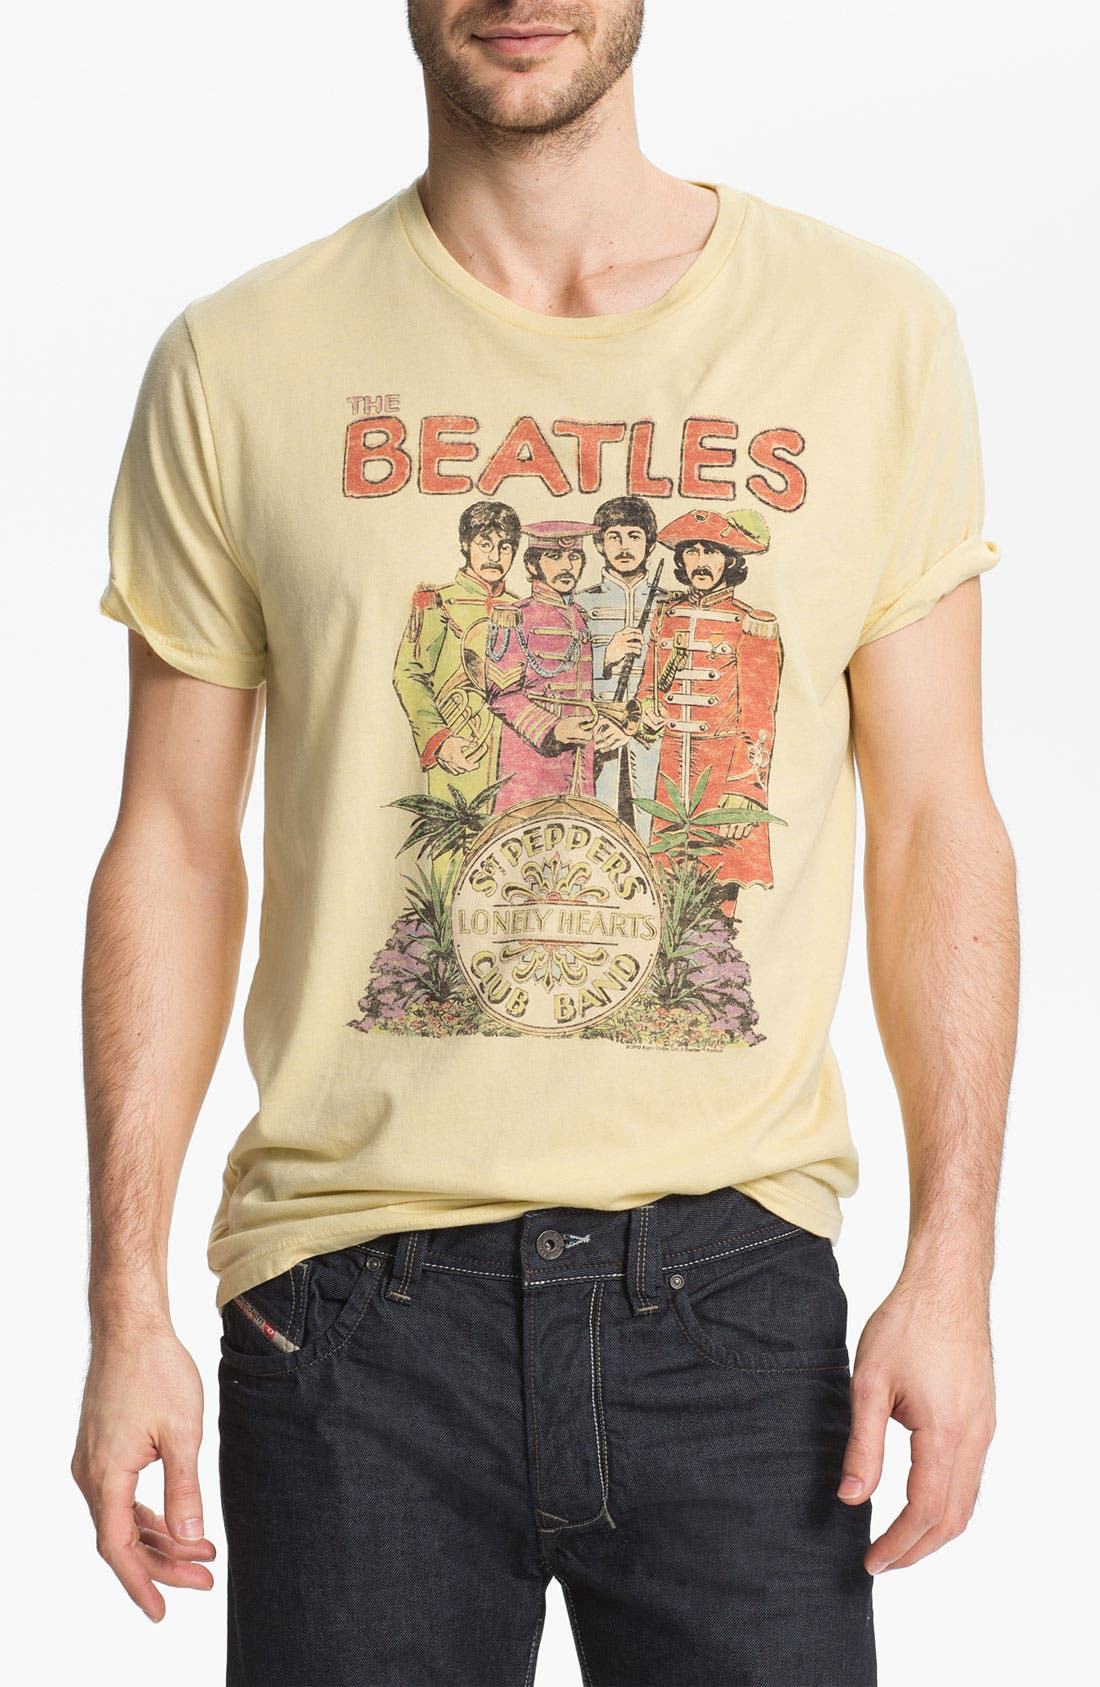 Alternate Image 1 Selected - Junk Food 'The Beatles' Graphic T-shirt